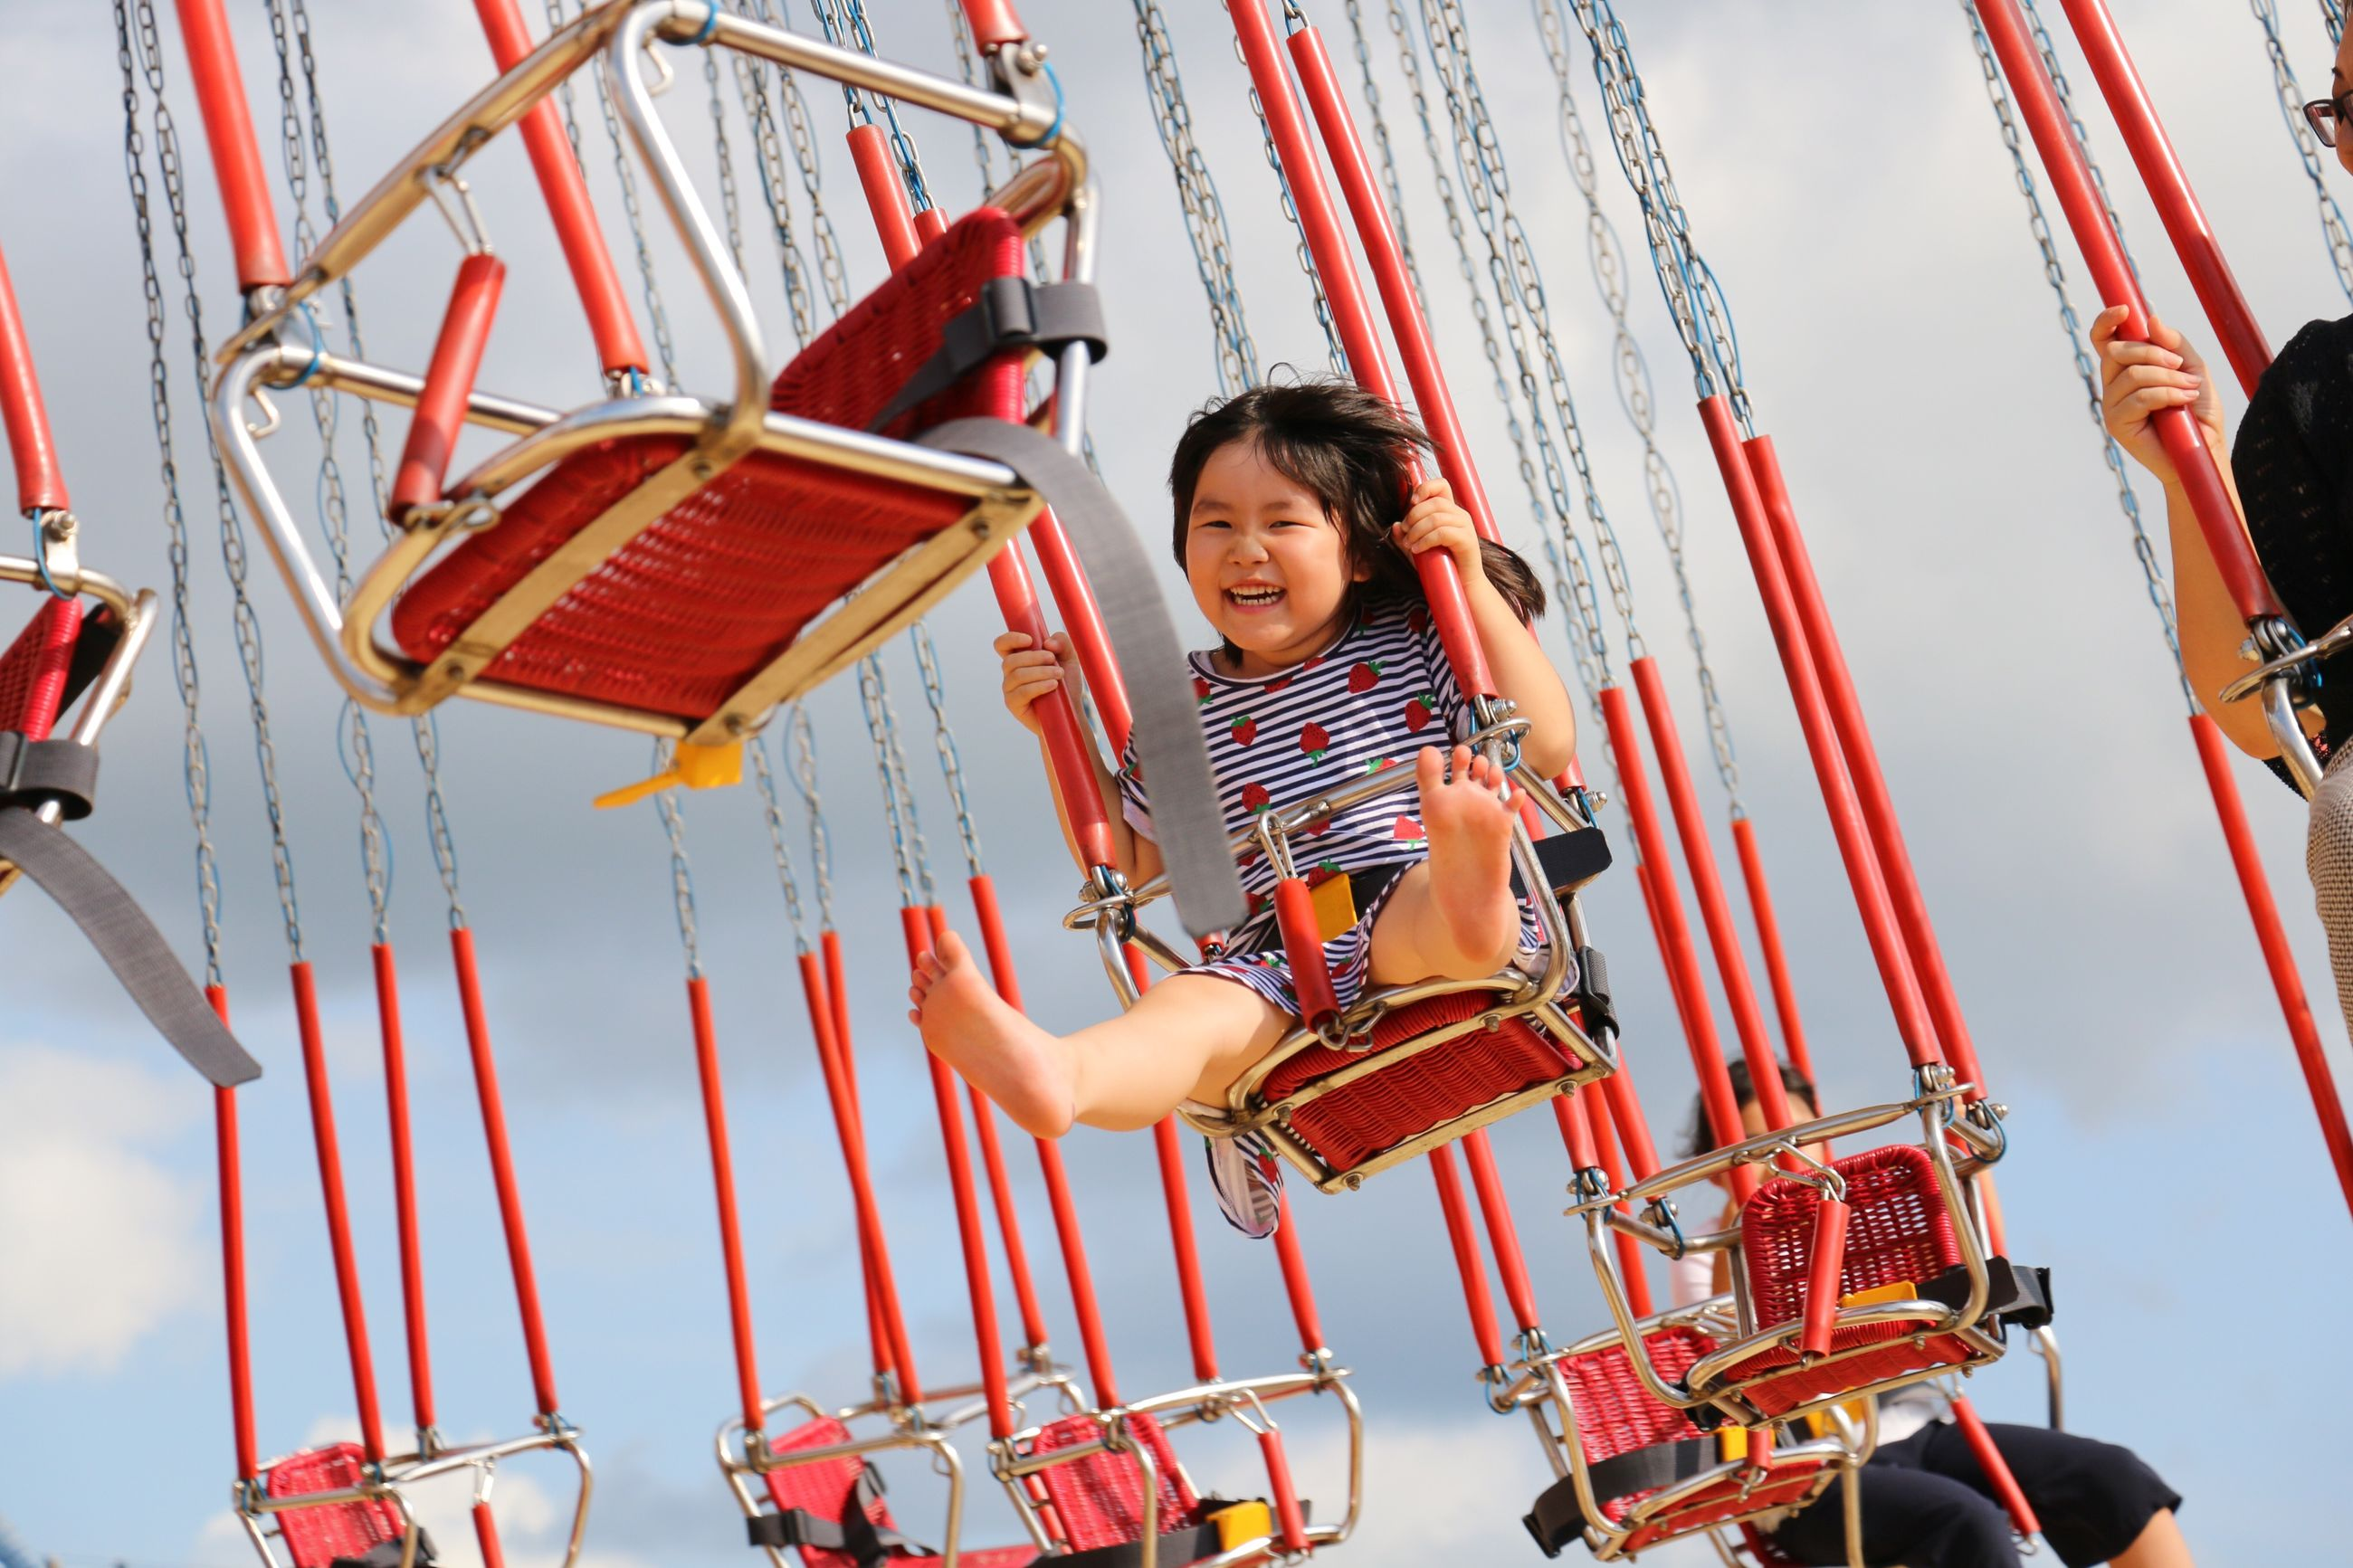 childhood, enjoyment, fun, smiling, leisure activity, elementary age, real people, happiness, low angle view, amusement park, one person, full length, front view, looking at camera, lifestyles, day, excitement, playing, cheerful, jumping, amusement park ride, girls, outdoors, portrait, carousel, young adult, people